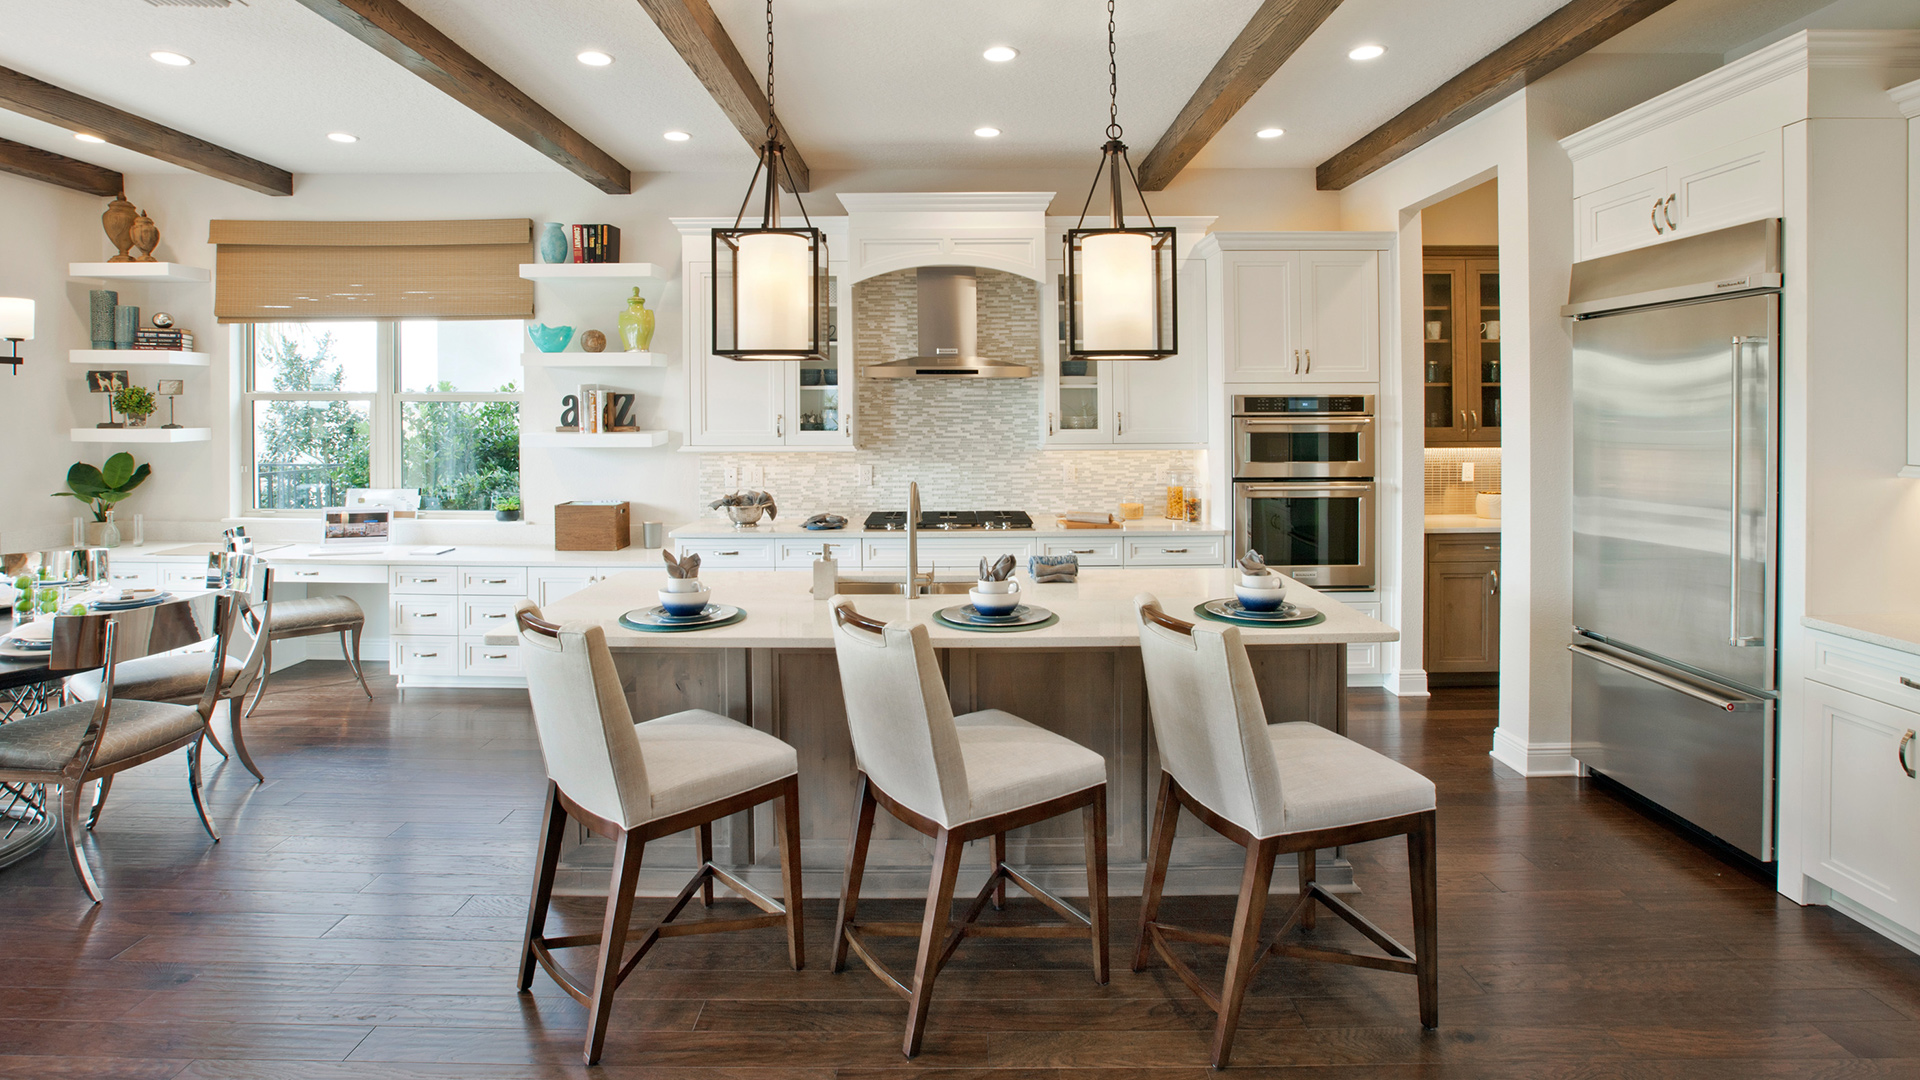 Wonderful Kitchen Model Of The Madeira (FL) Home Design Available In Winter Garden, FL